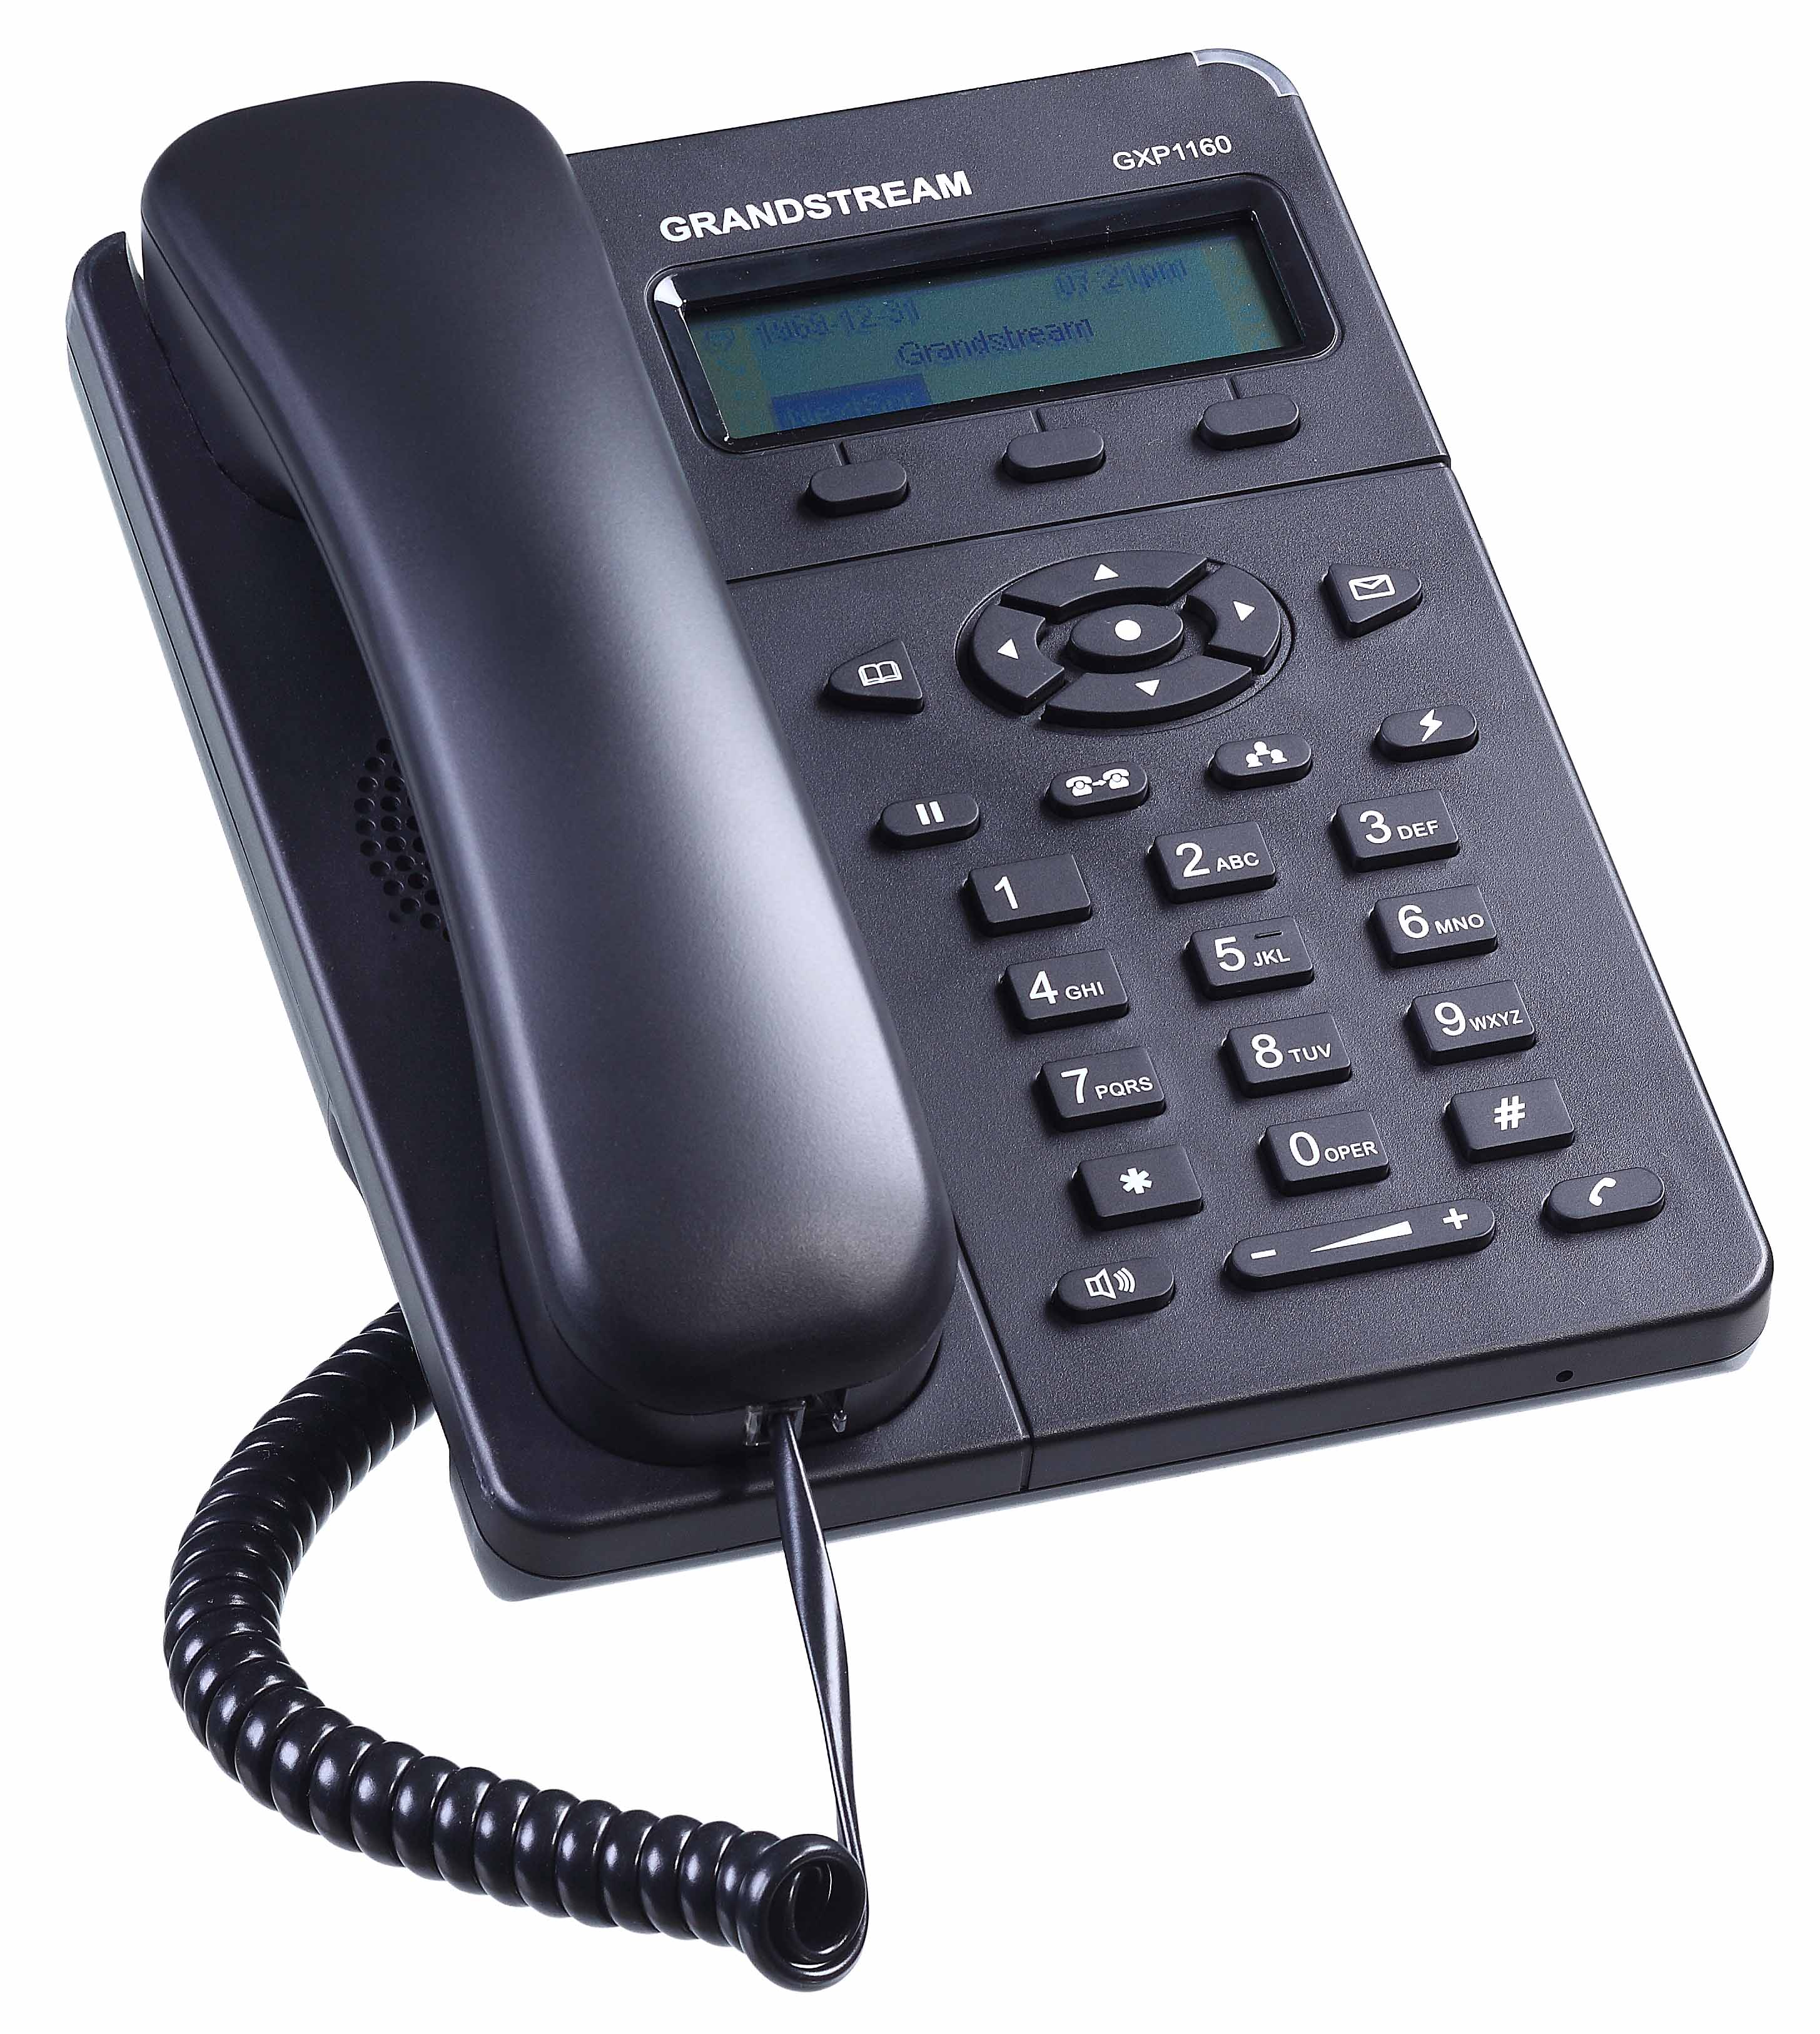 Grandstream GXP1160  Enterprise IP Telephone